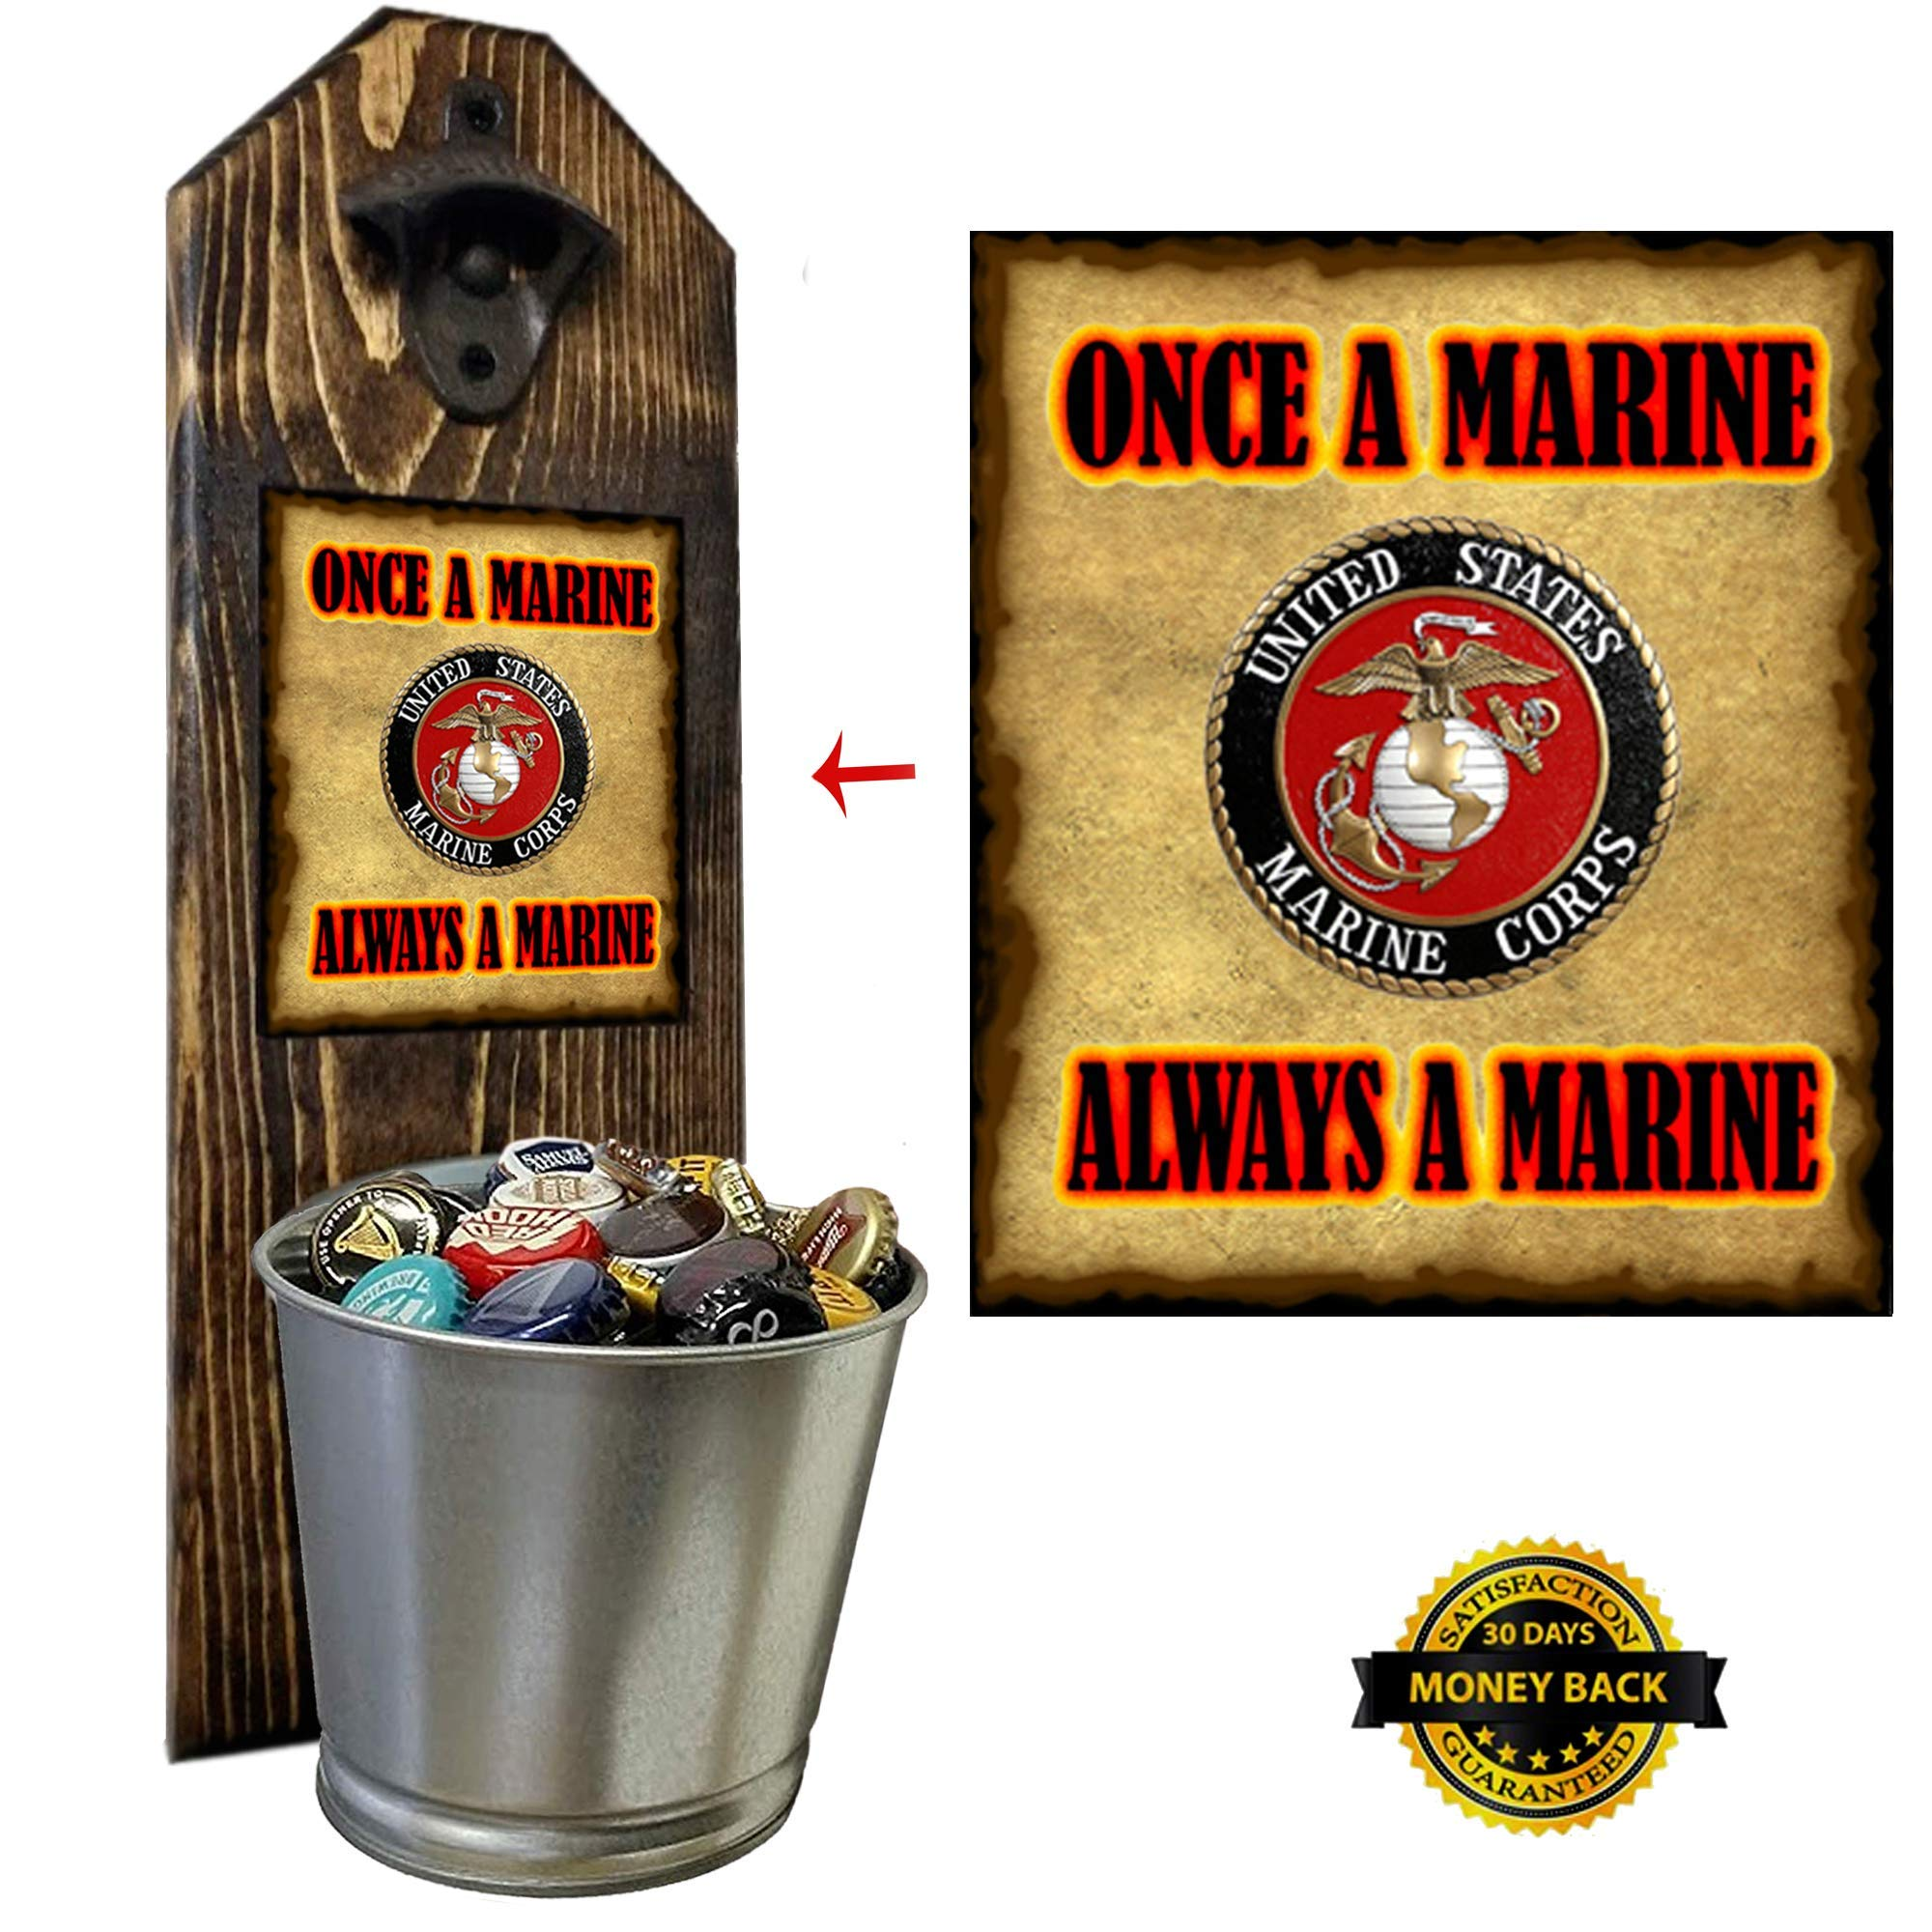 ''Marine Corps'' Bottle Opener and Cap Catcher, Wall Mounted - Handcrafted by a Vet - 100% Solid Pine 3/4'' Thick - Rustic Cast Iron Opener and Galvanized Bucket - Great Veteran Gift! Semper Fi! by CherryPic Junction (Image #1)